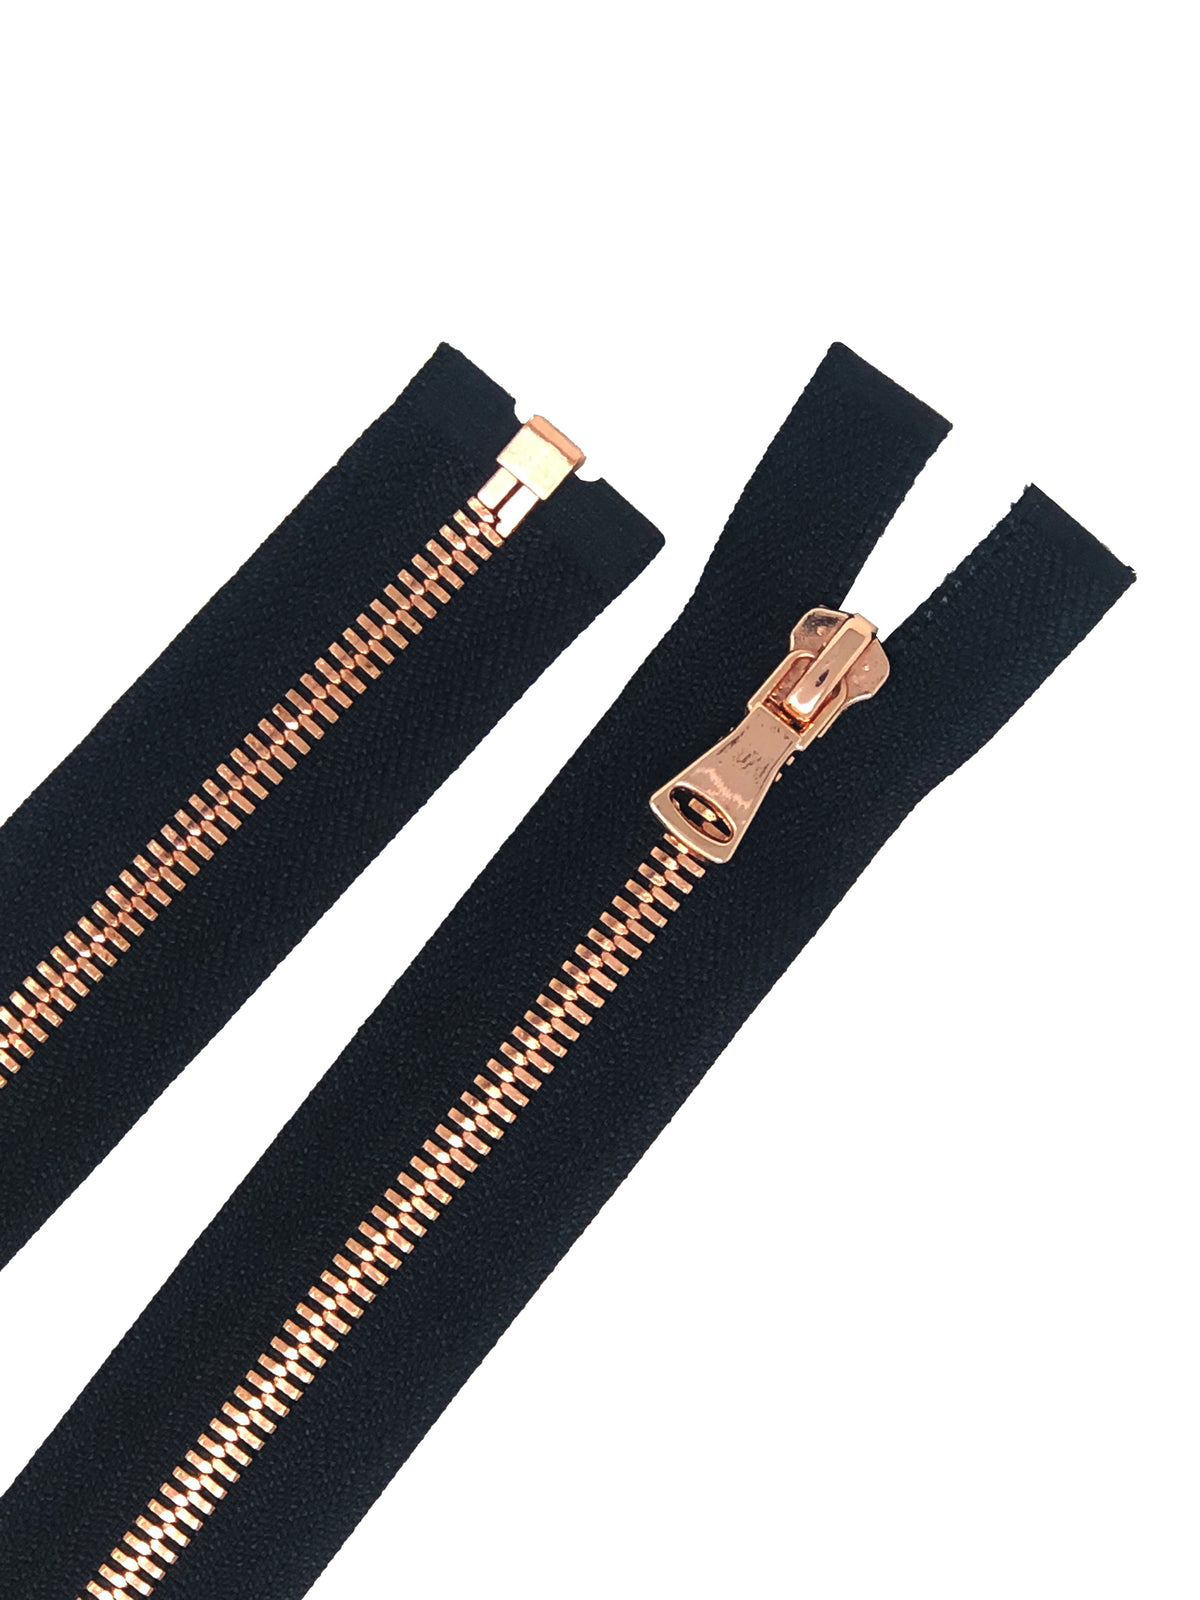 High Glossy Polished European Zipper in 28 inches Black Tape 5MM or 8MM